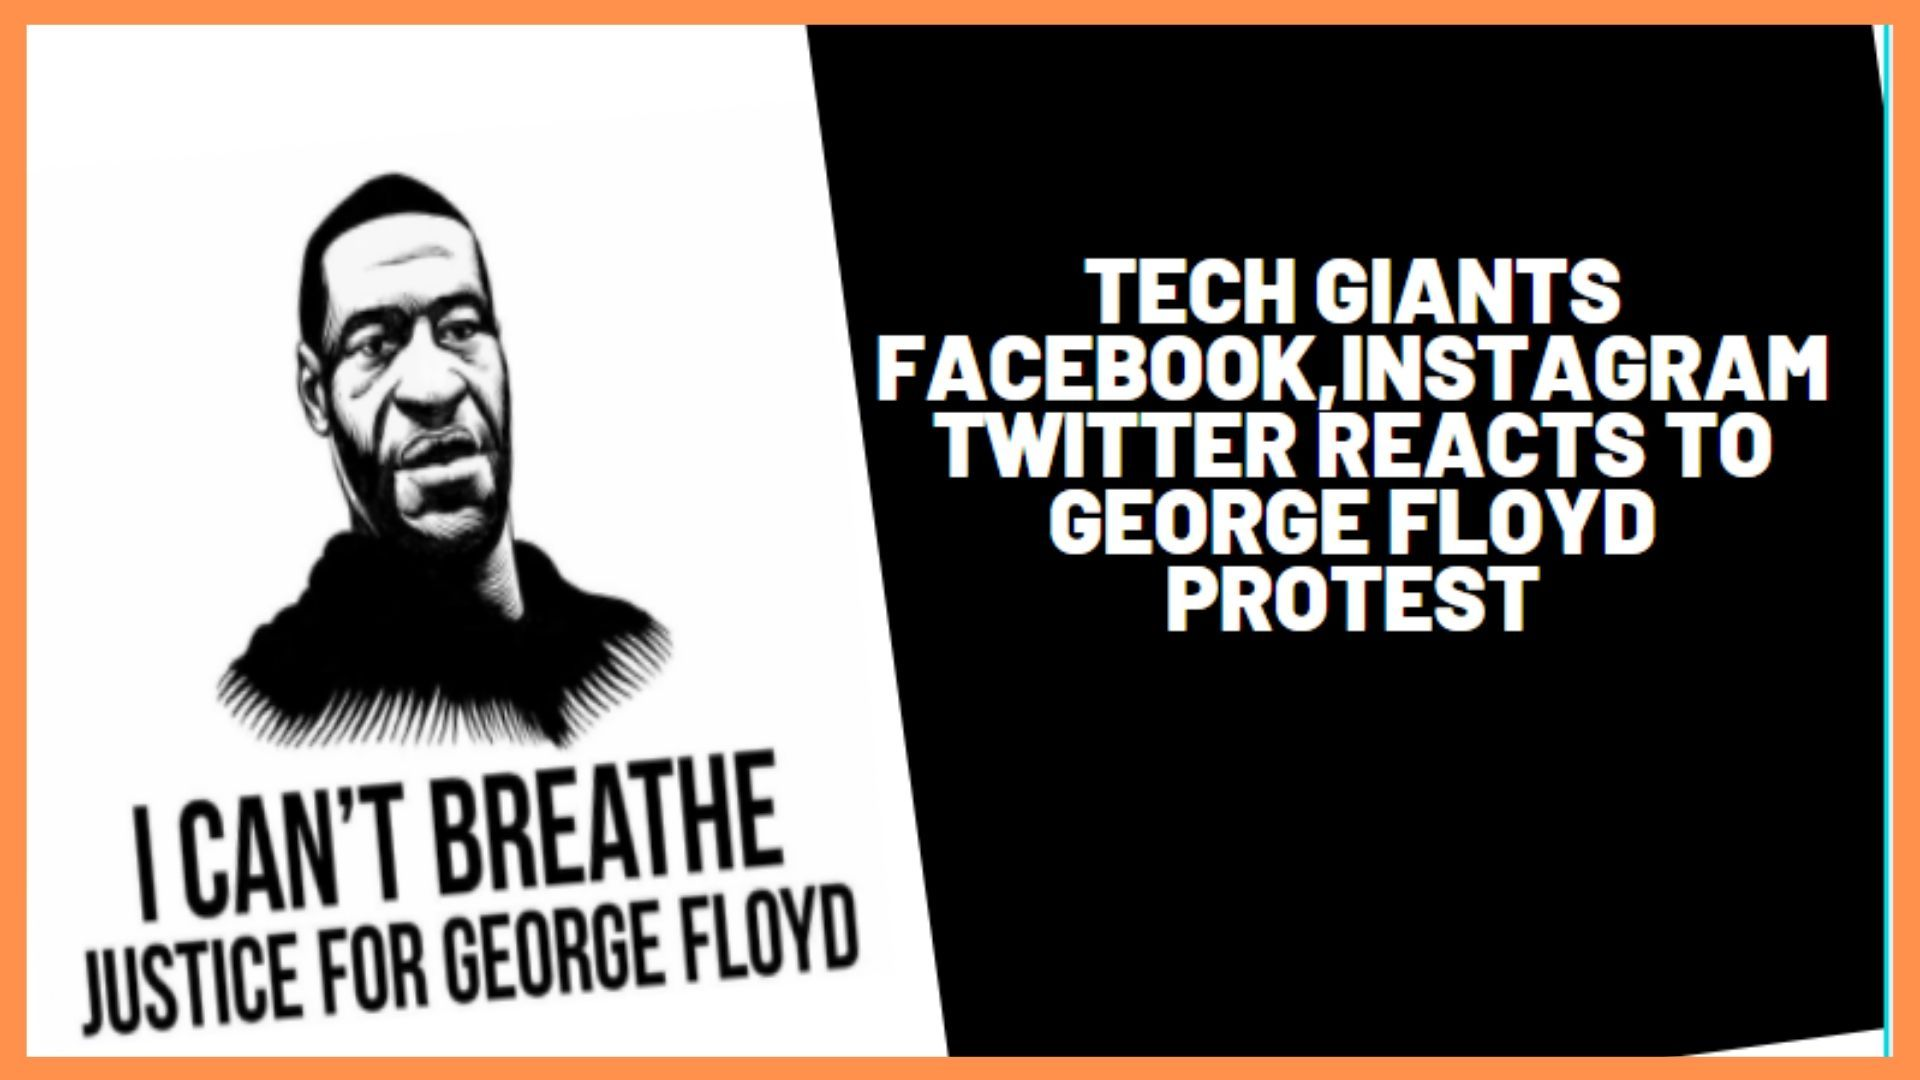 Tech Giants, Facebook,Instagram, and Twitter reacts to George Floyd Protest